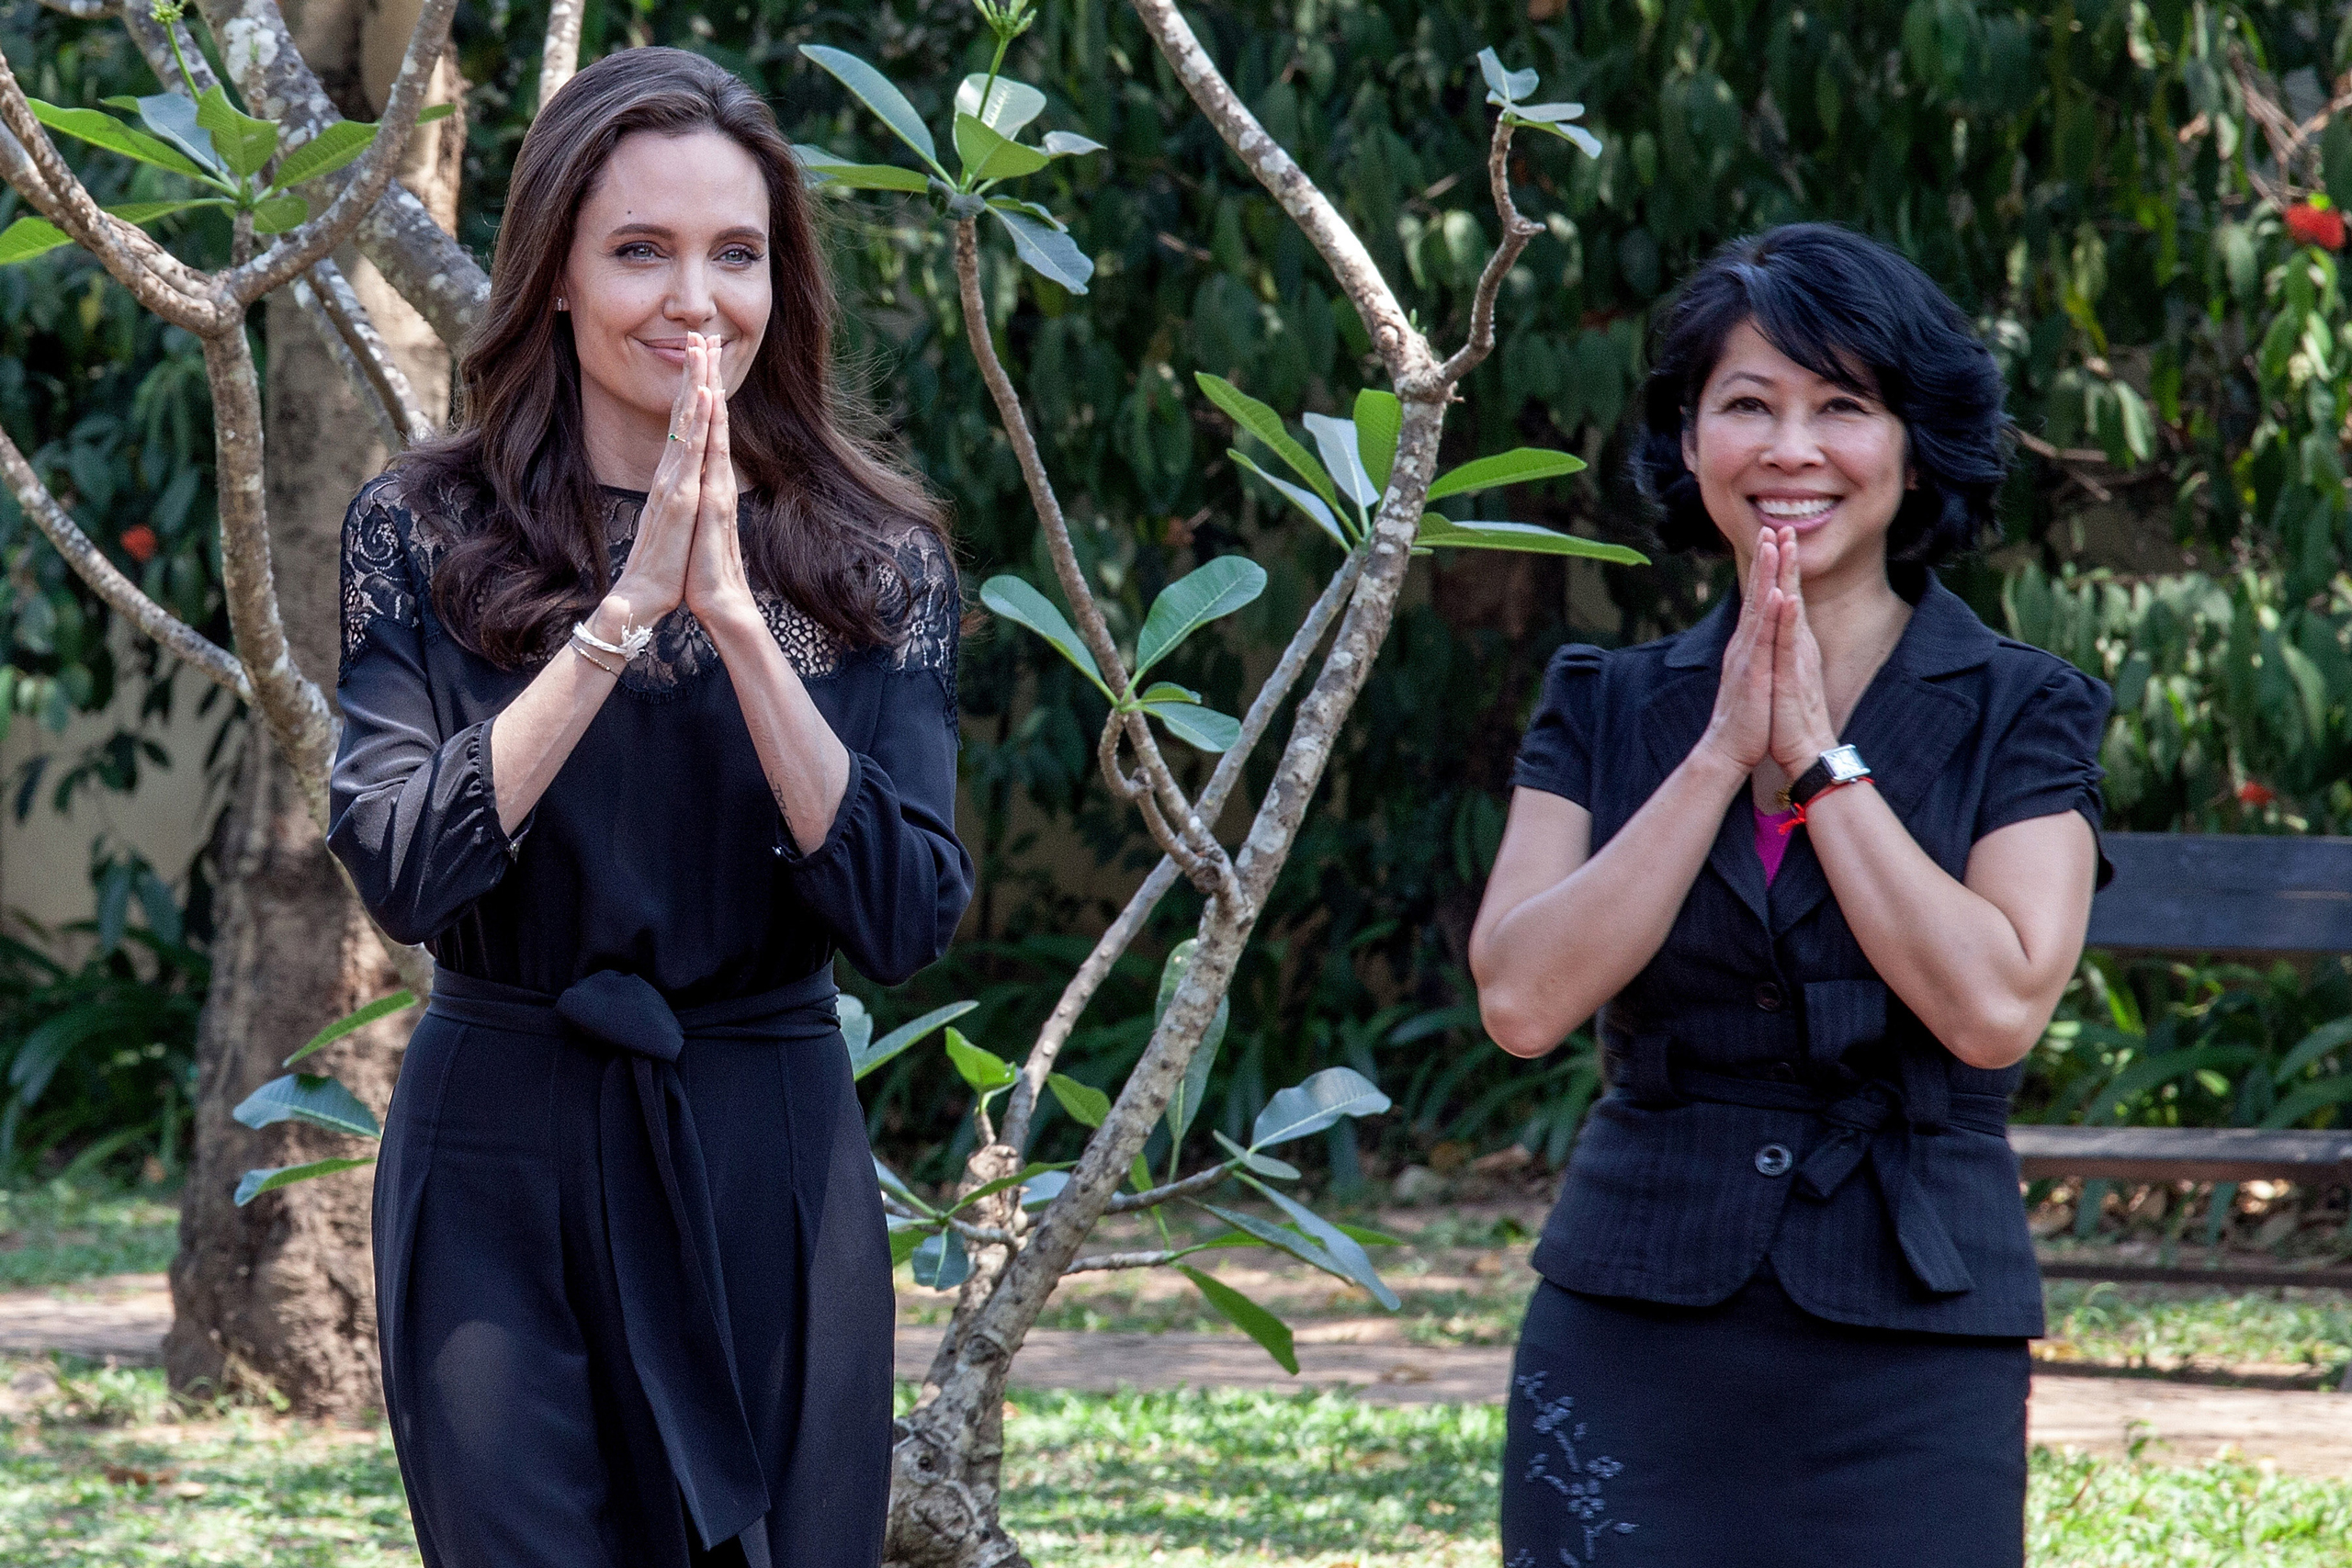 Angelina Jolie and author Loung Ung greet during their arrival at a press conference ahead of the premiere of their new film  First They Killed My Father  set up at the Raffles Grand Hotel D'Angkor in Siem Reap, Cambodia, on Febr. 18, 2017.